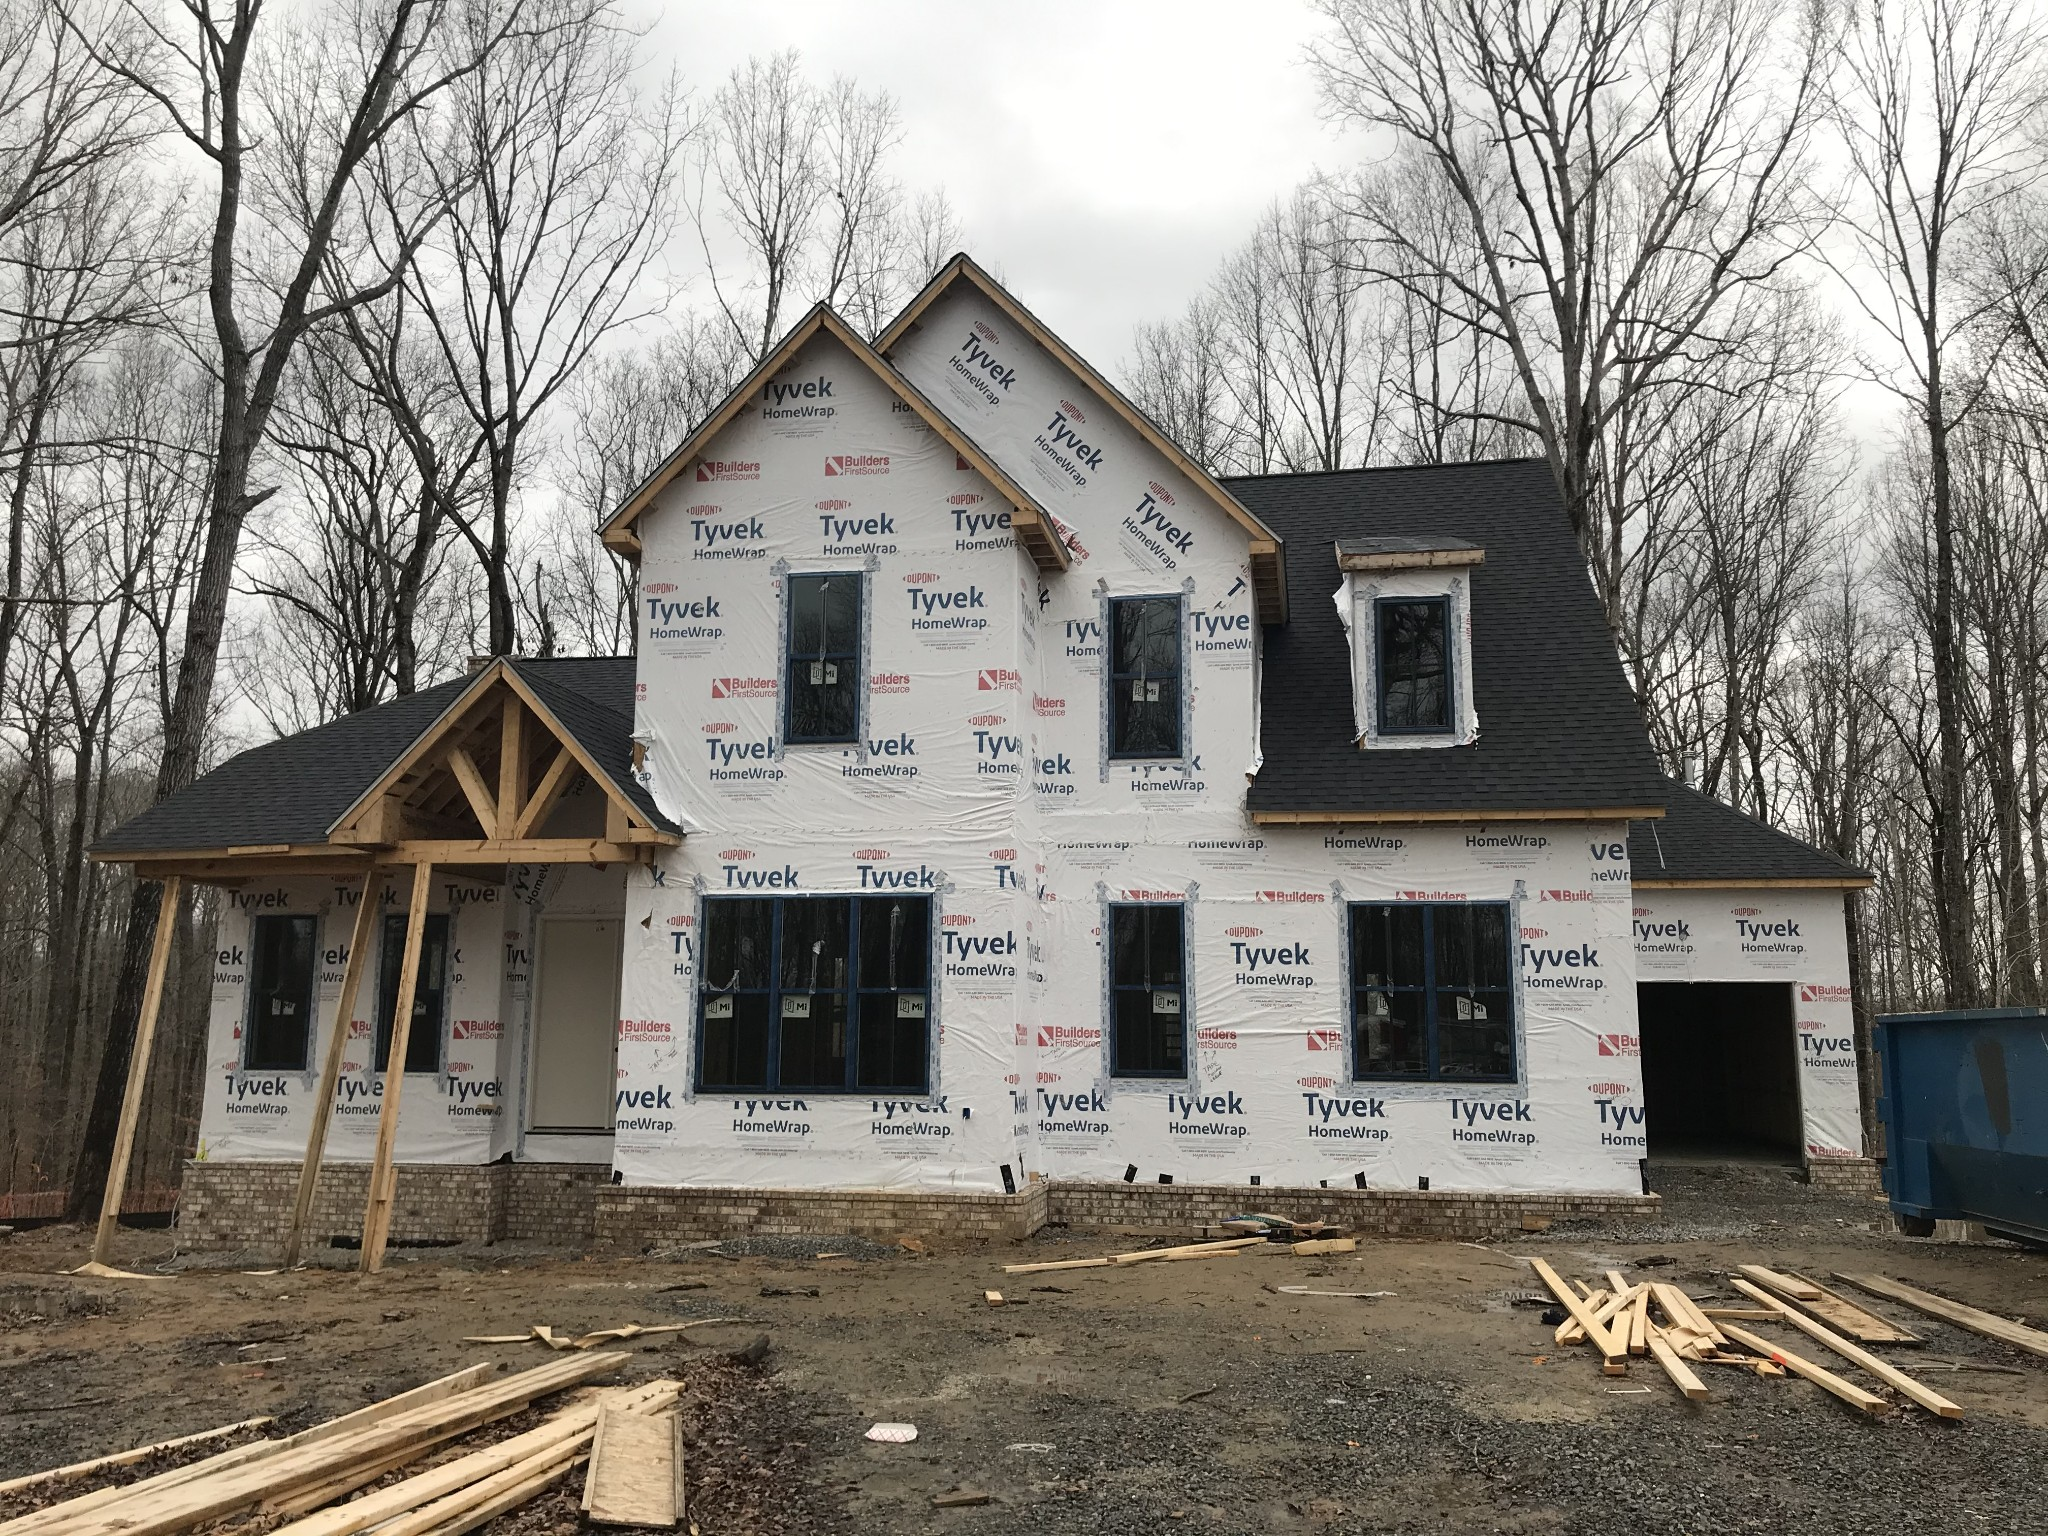 Lot 2 - Beautiful Farmhouse style Home built by Hewn Custom Homes near the Fork! Open concept plan, quality finishes, gorgeous wooded lot, high end appliances, large kitchen and master suite, large bonus room, 3 car garage, Great front proch and rear outdoor living. First Bank CC incentive too!